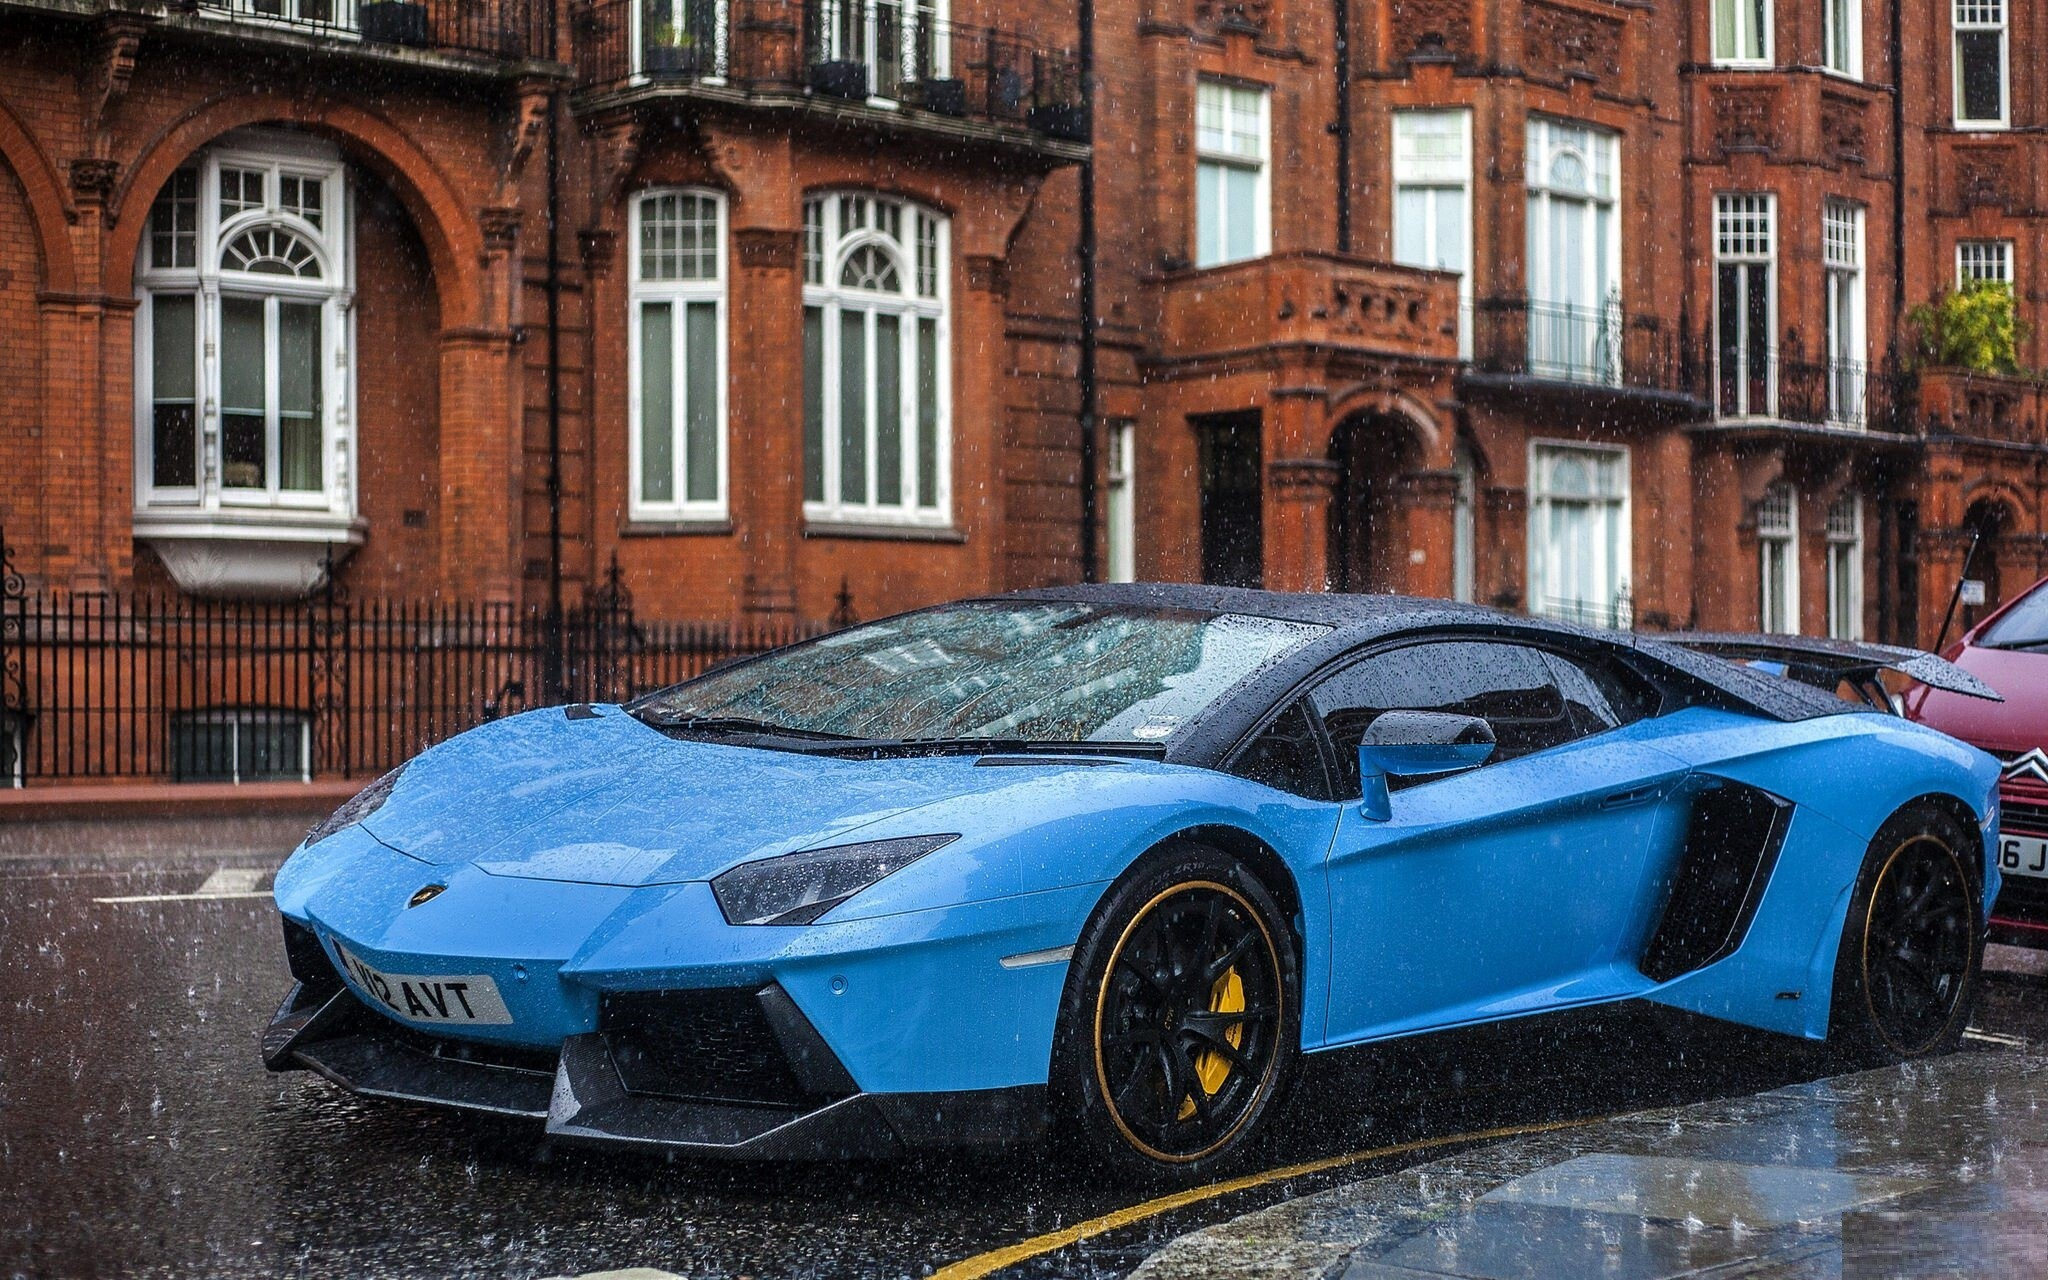 Aventador Lamborghini Blue Car in Rain HD Luxury Wallpaper